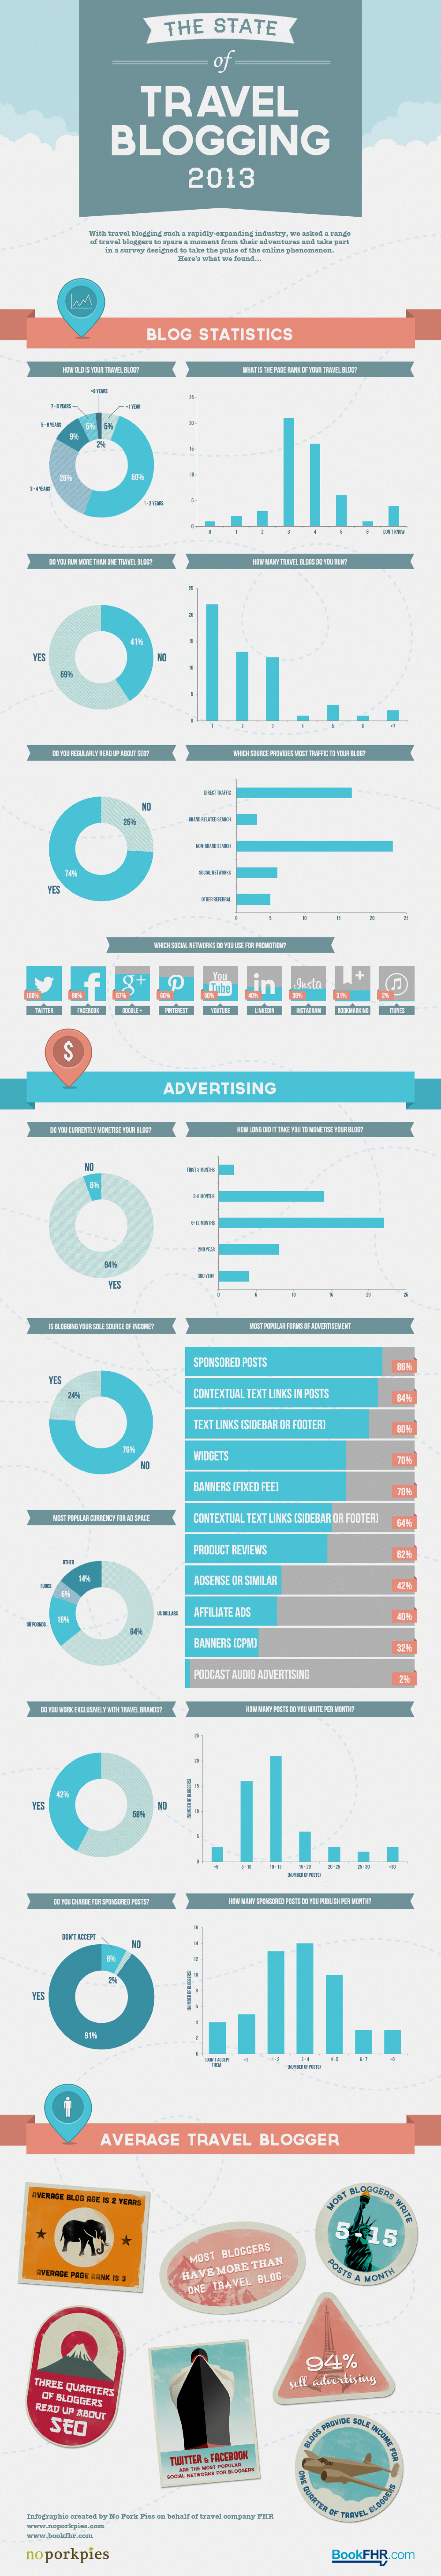 The State of Travel Blogging 2013 Infographic